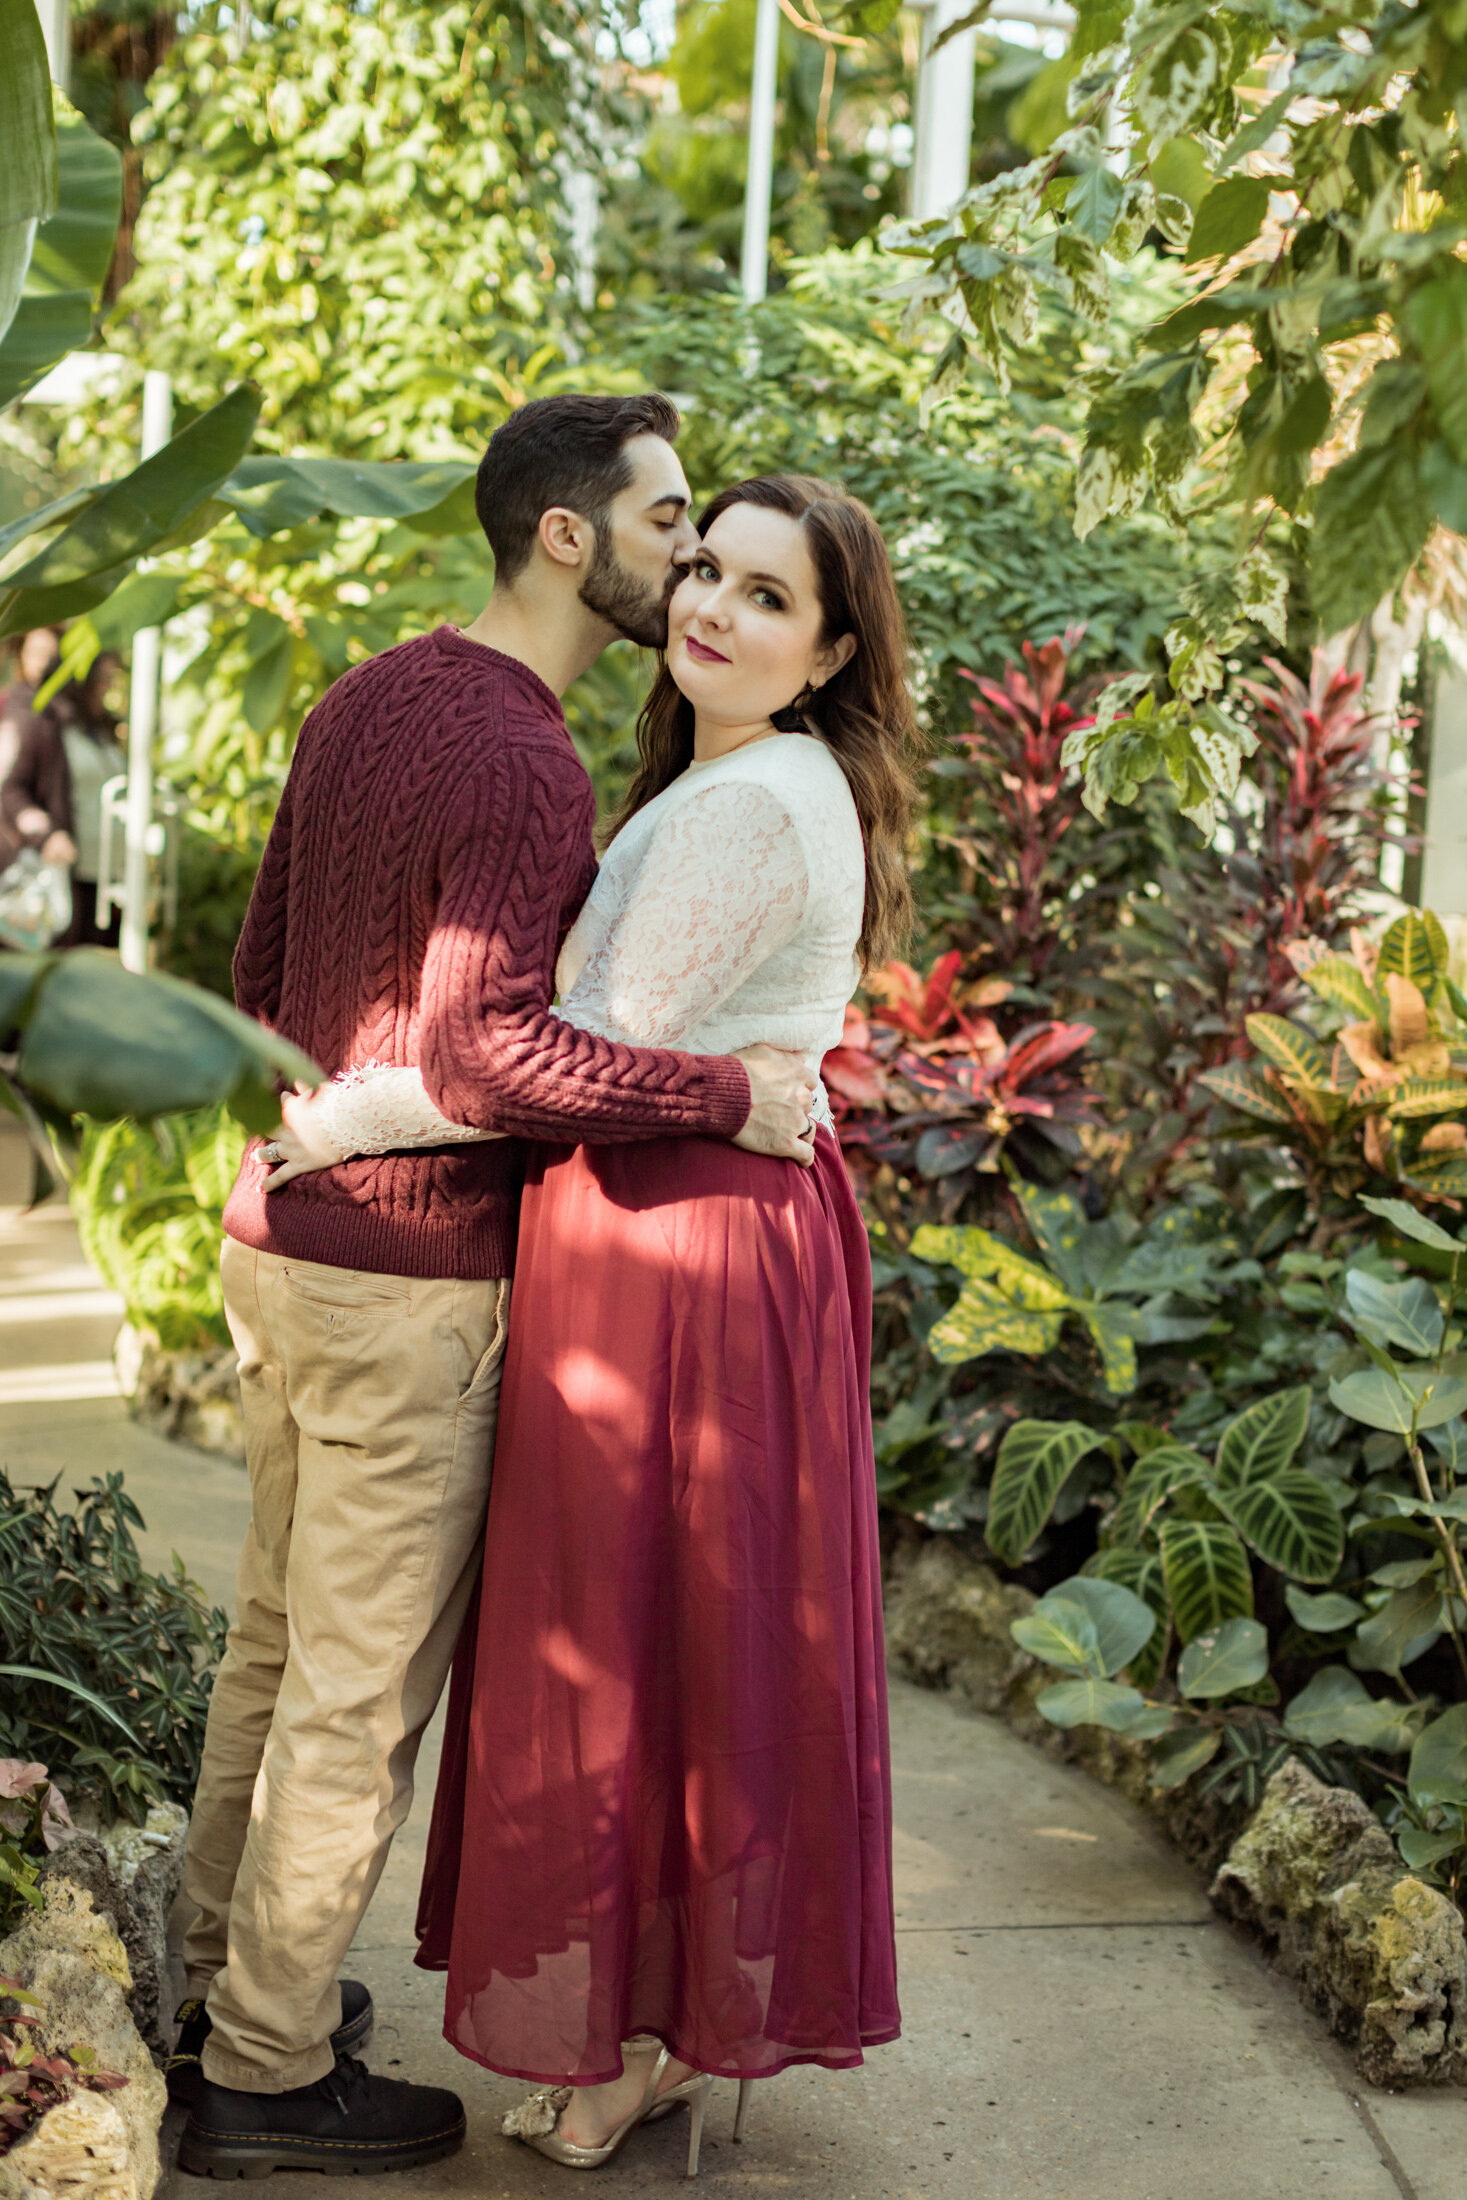 Winter Engagement Session - Belle Isle Casino, and  Anna Scripps Whitcomb Conservatory , Detroit, Michigan - Jack Robert Photography